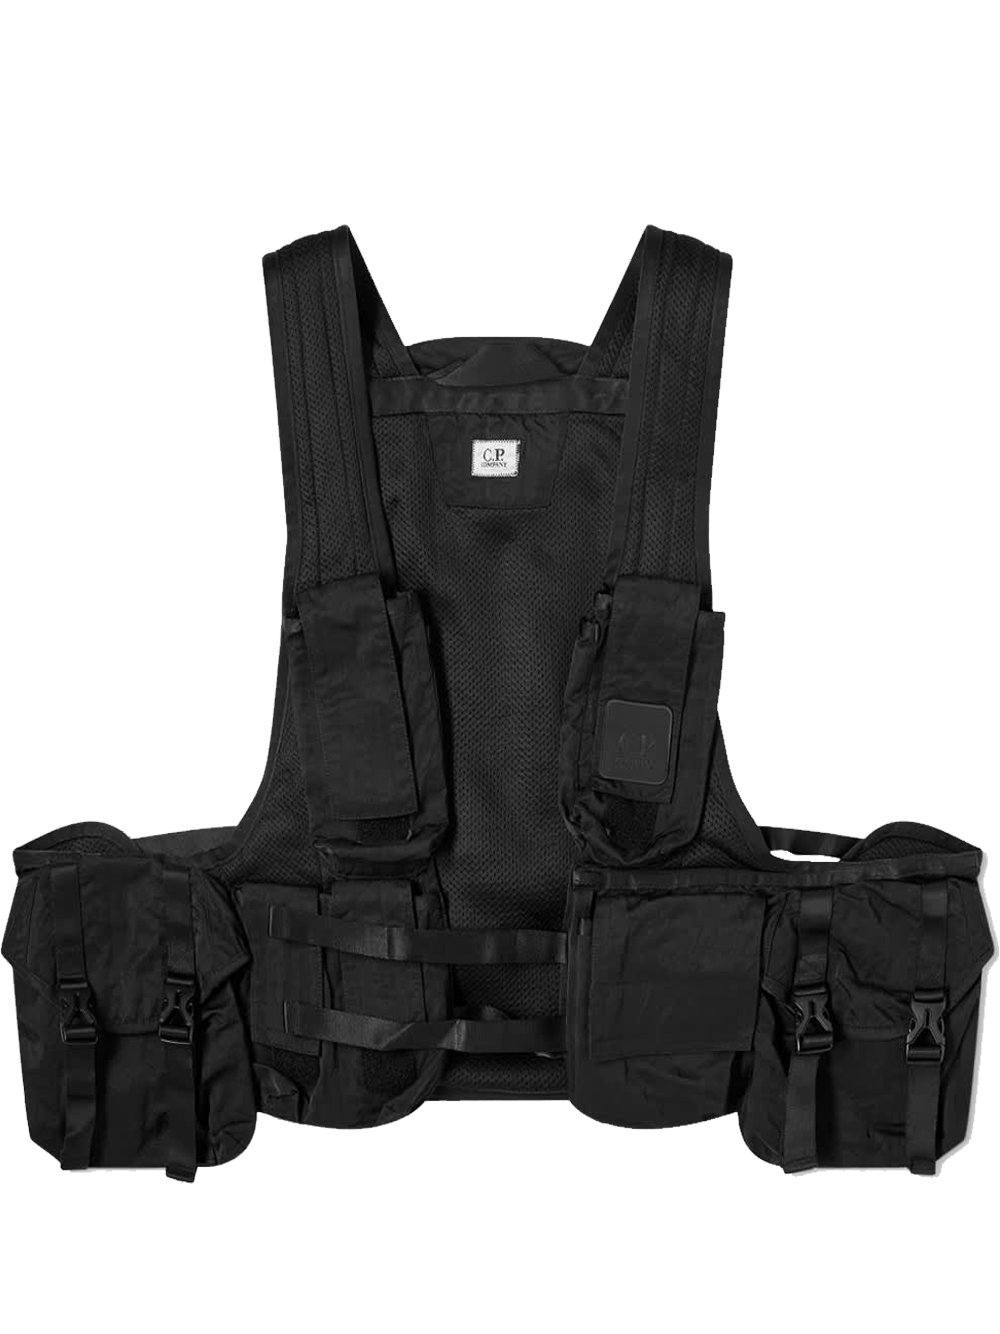 C.P. COMPANY Tactical Vest Black